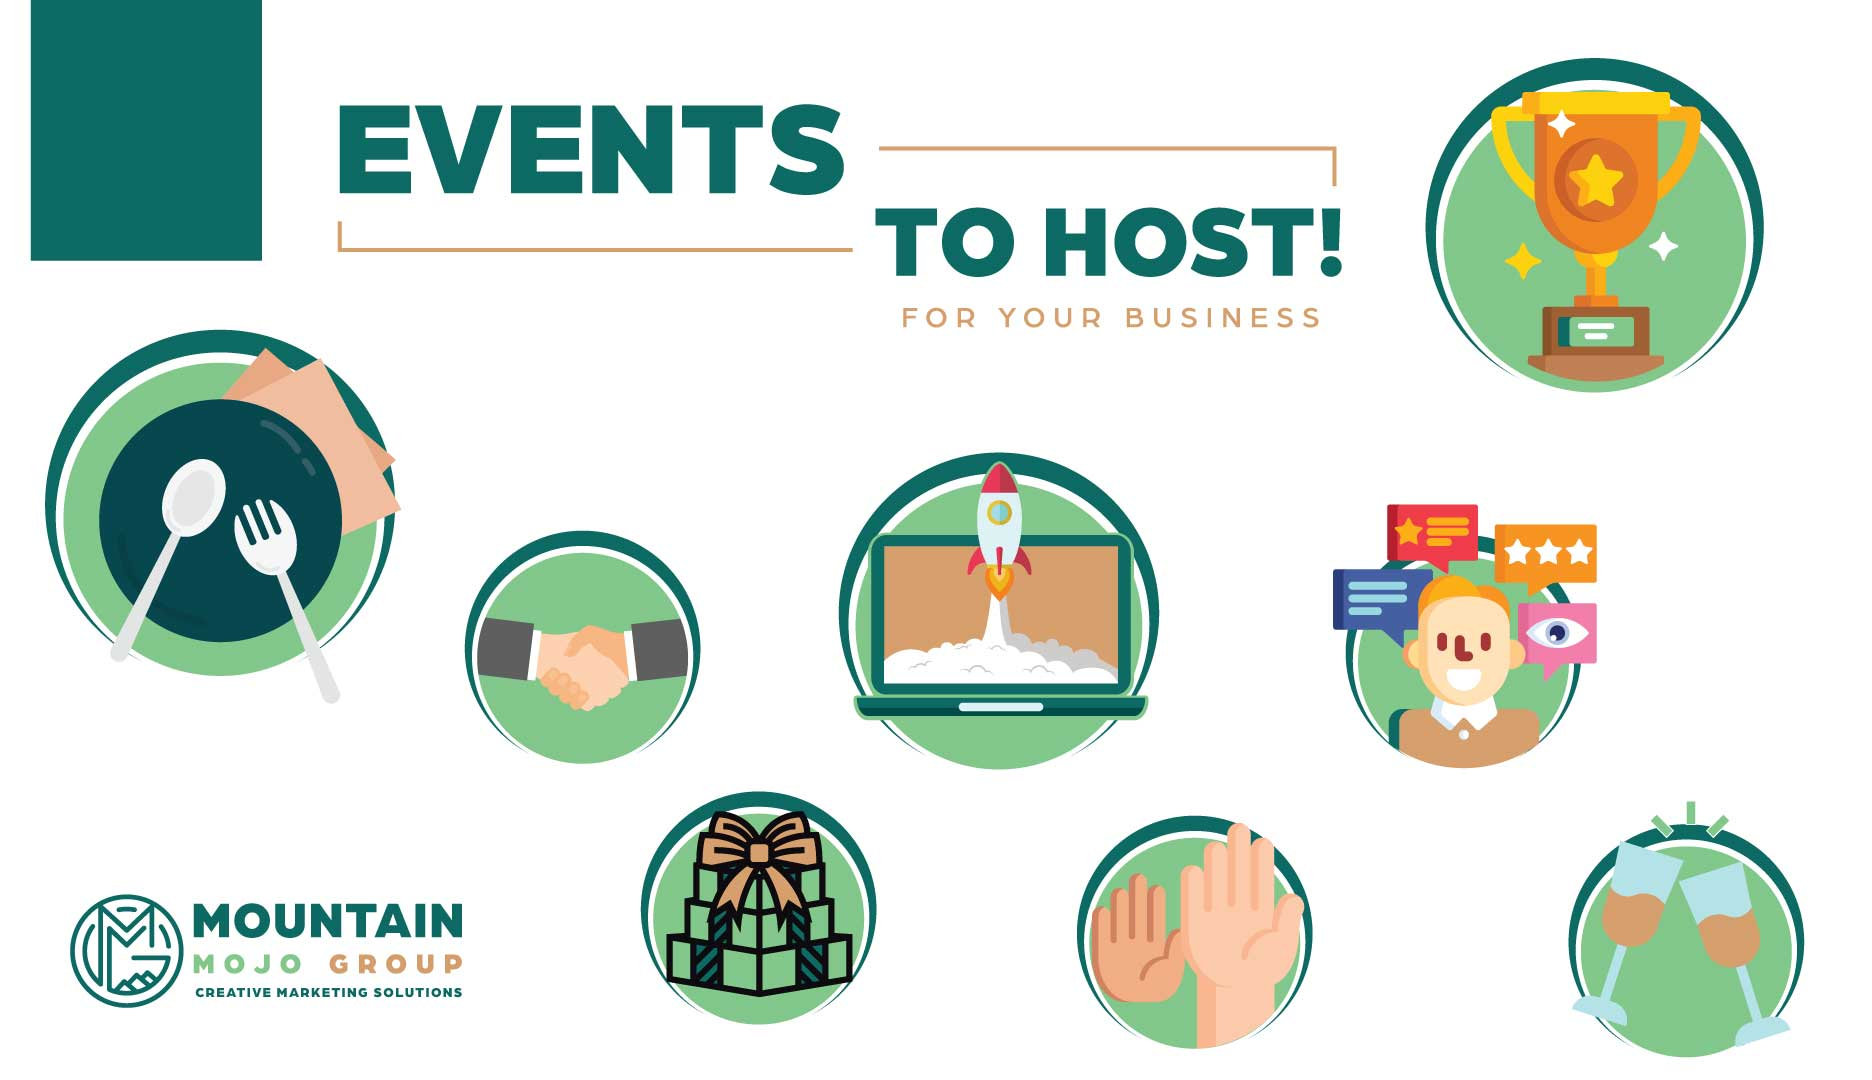 This image provides icons that represent various event themes for clients including food services, meet and greets, gift exchange, and award ceremonies.